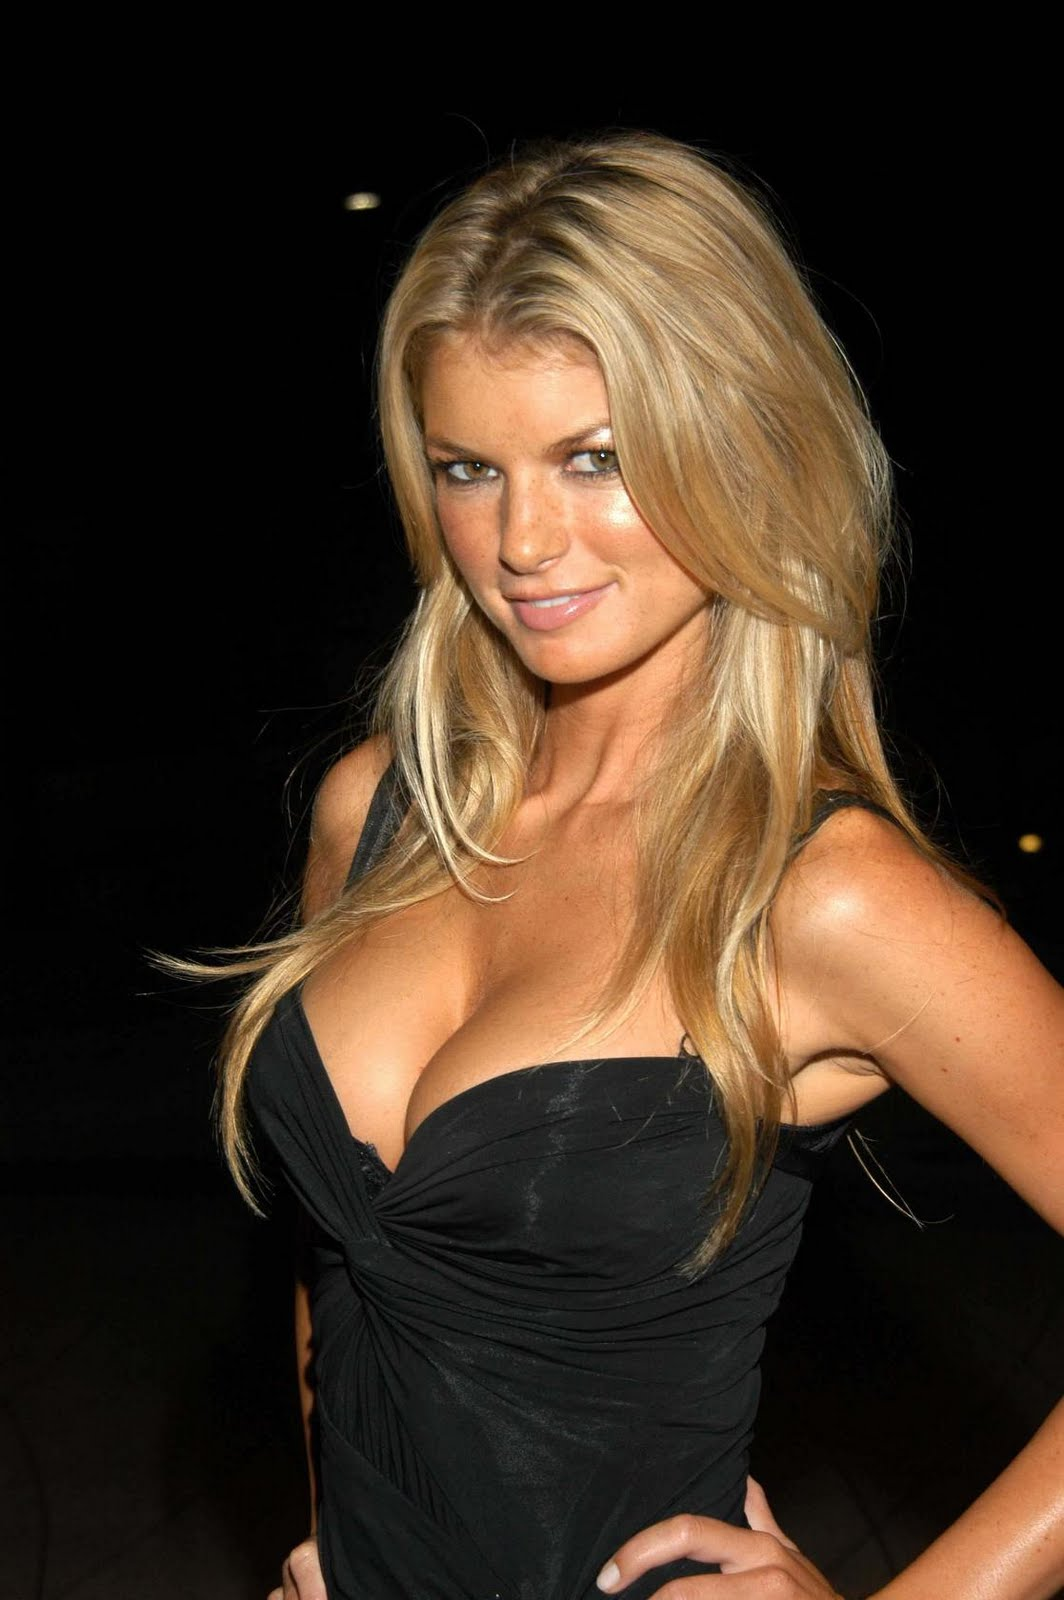 A Look At The World's Hottest Babe Marisa Miller